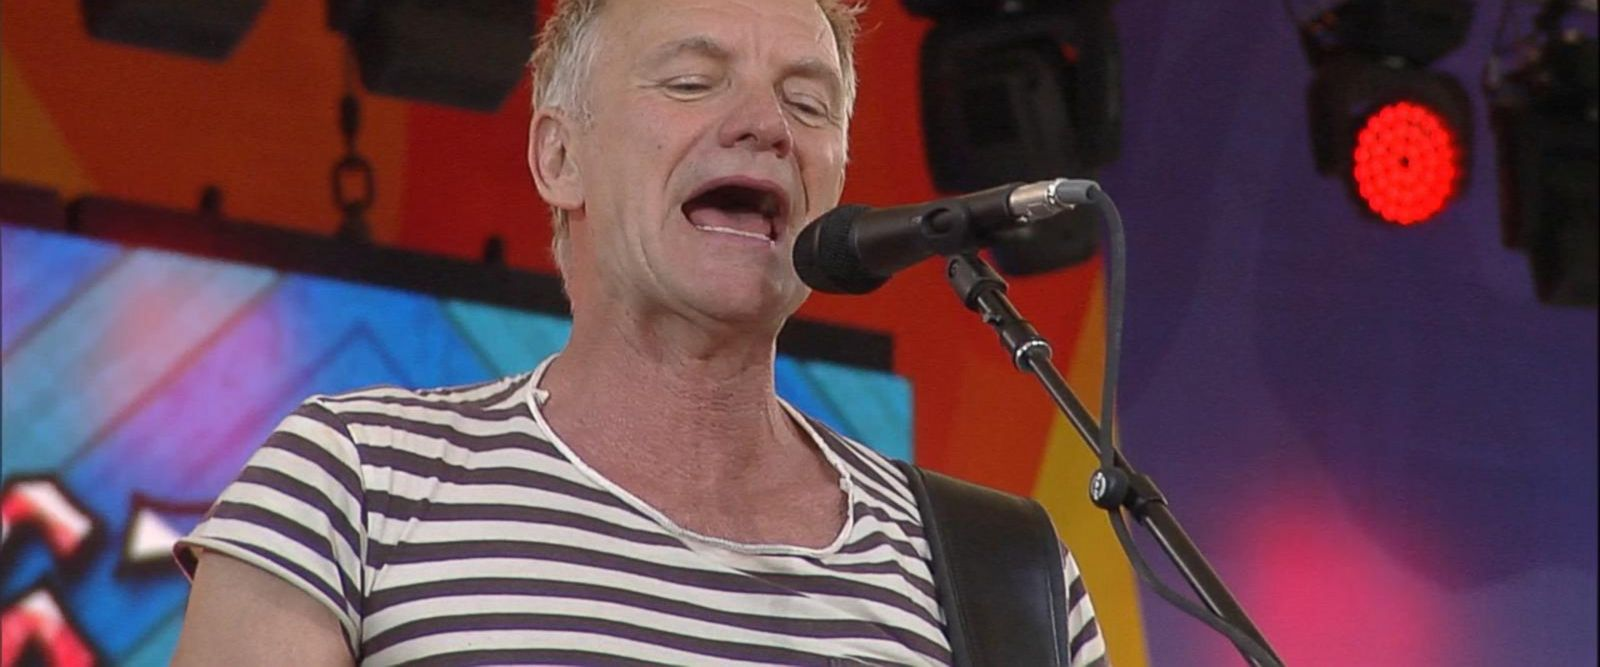 VIDEO: Sting and Shaggy rock out Central Park with the hit song 'Roxanne'